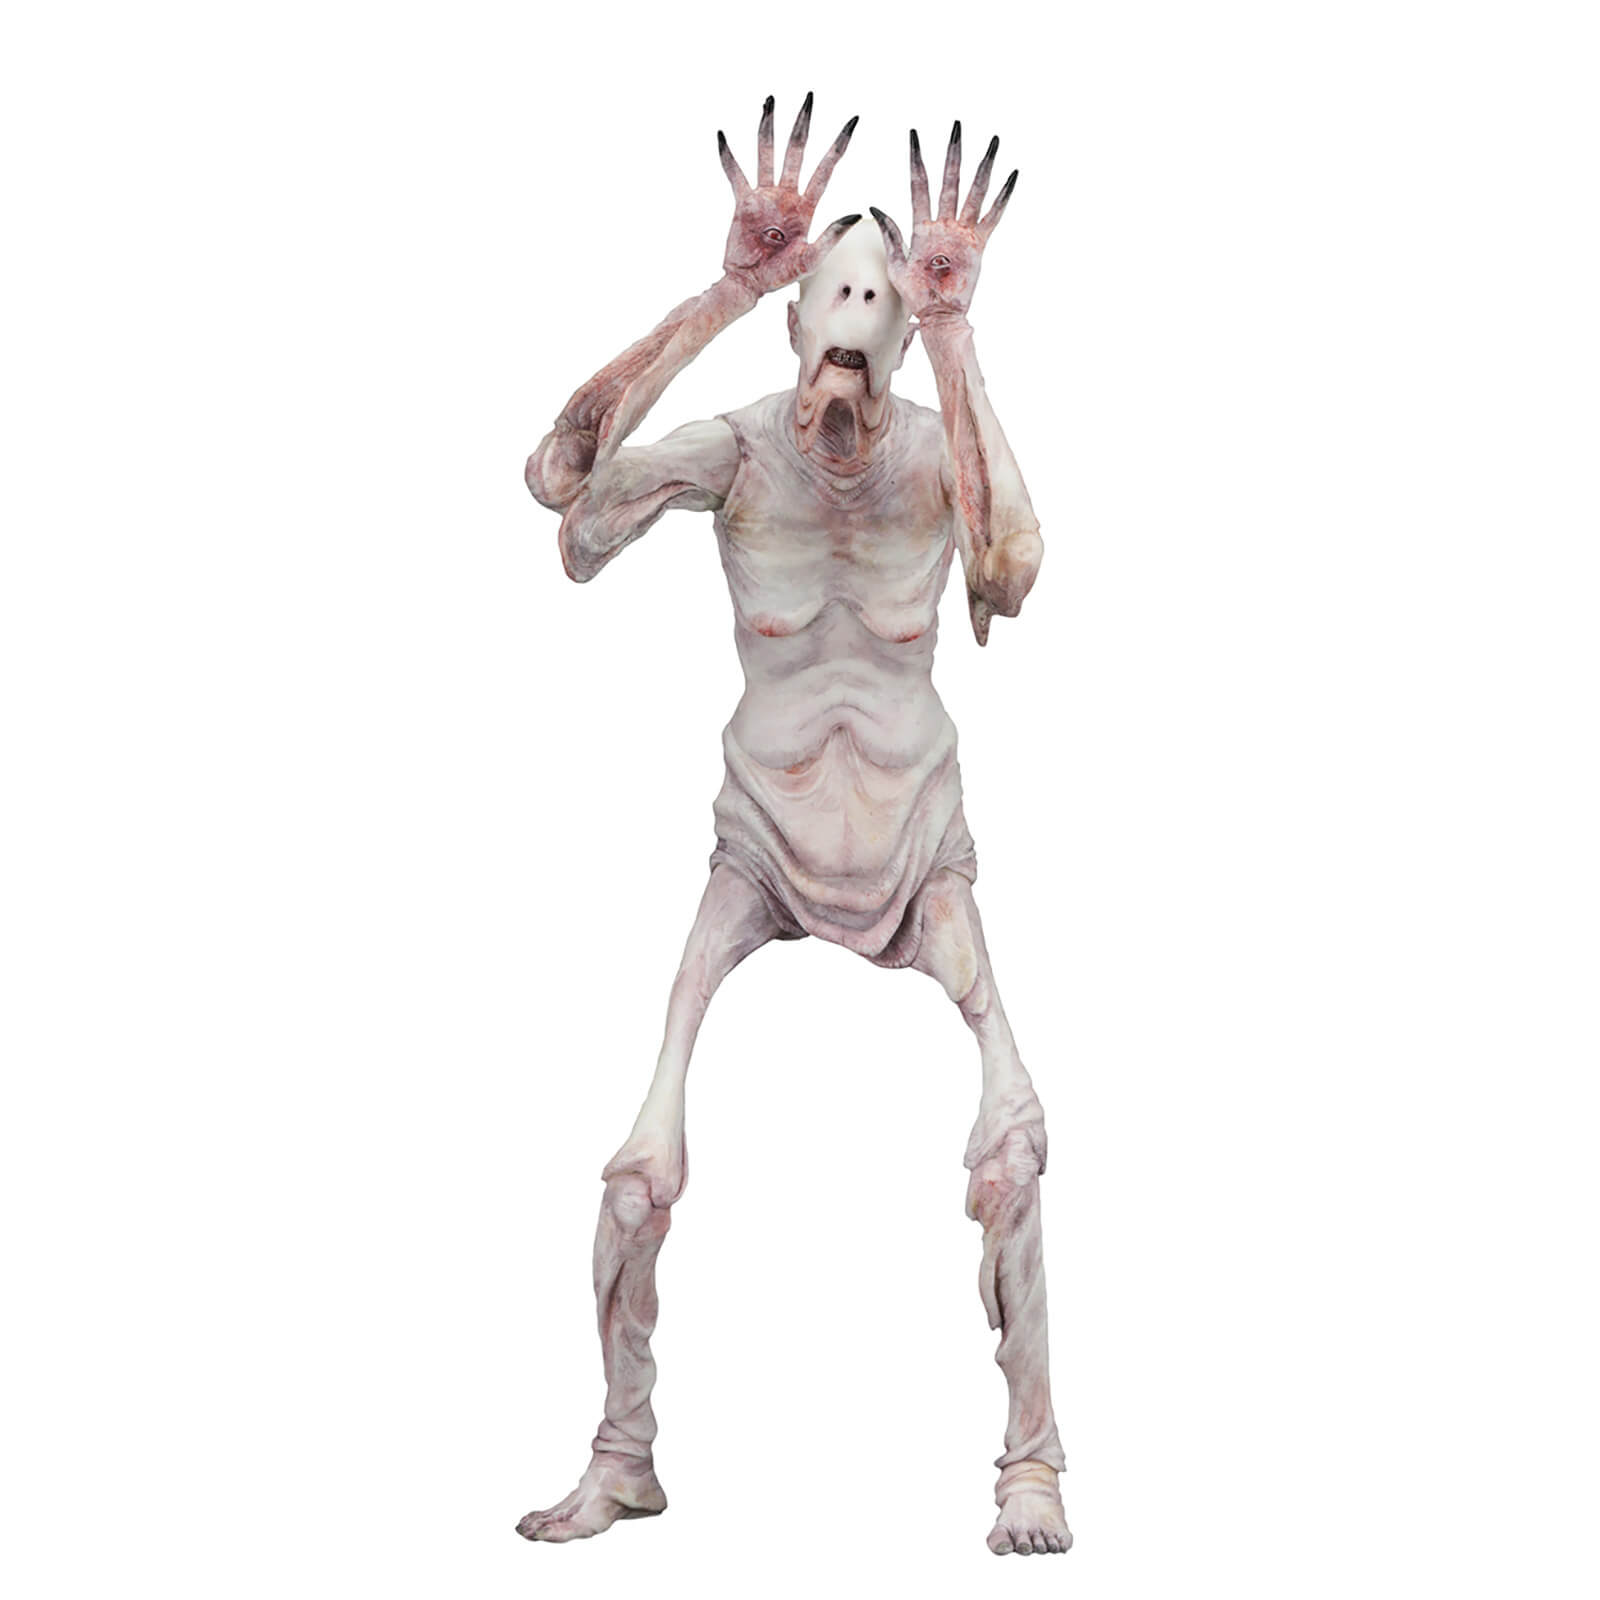 "NECA Guillermo del Toro Signature Collection - 7"""" Scale Action Figure - Pale Man (Pan"